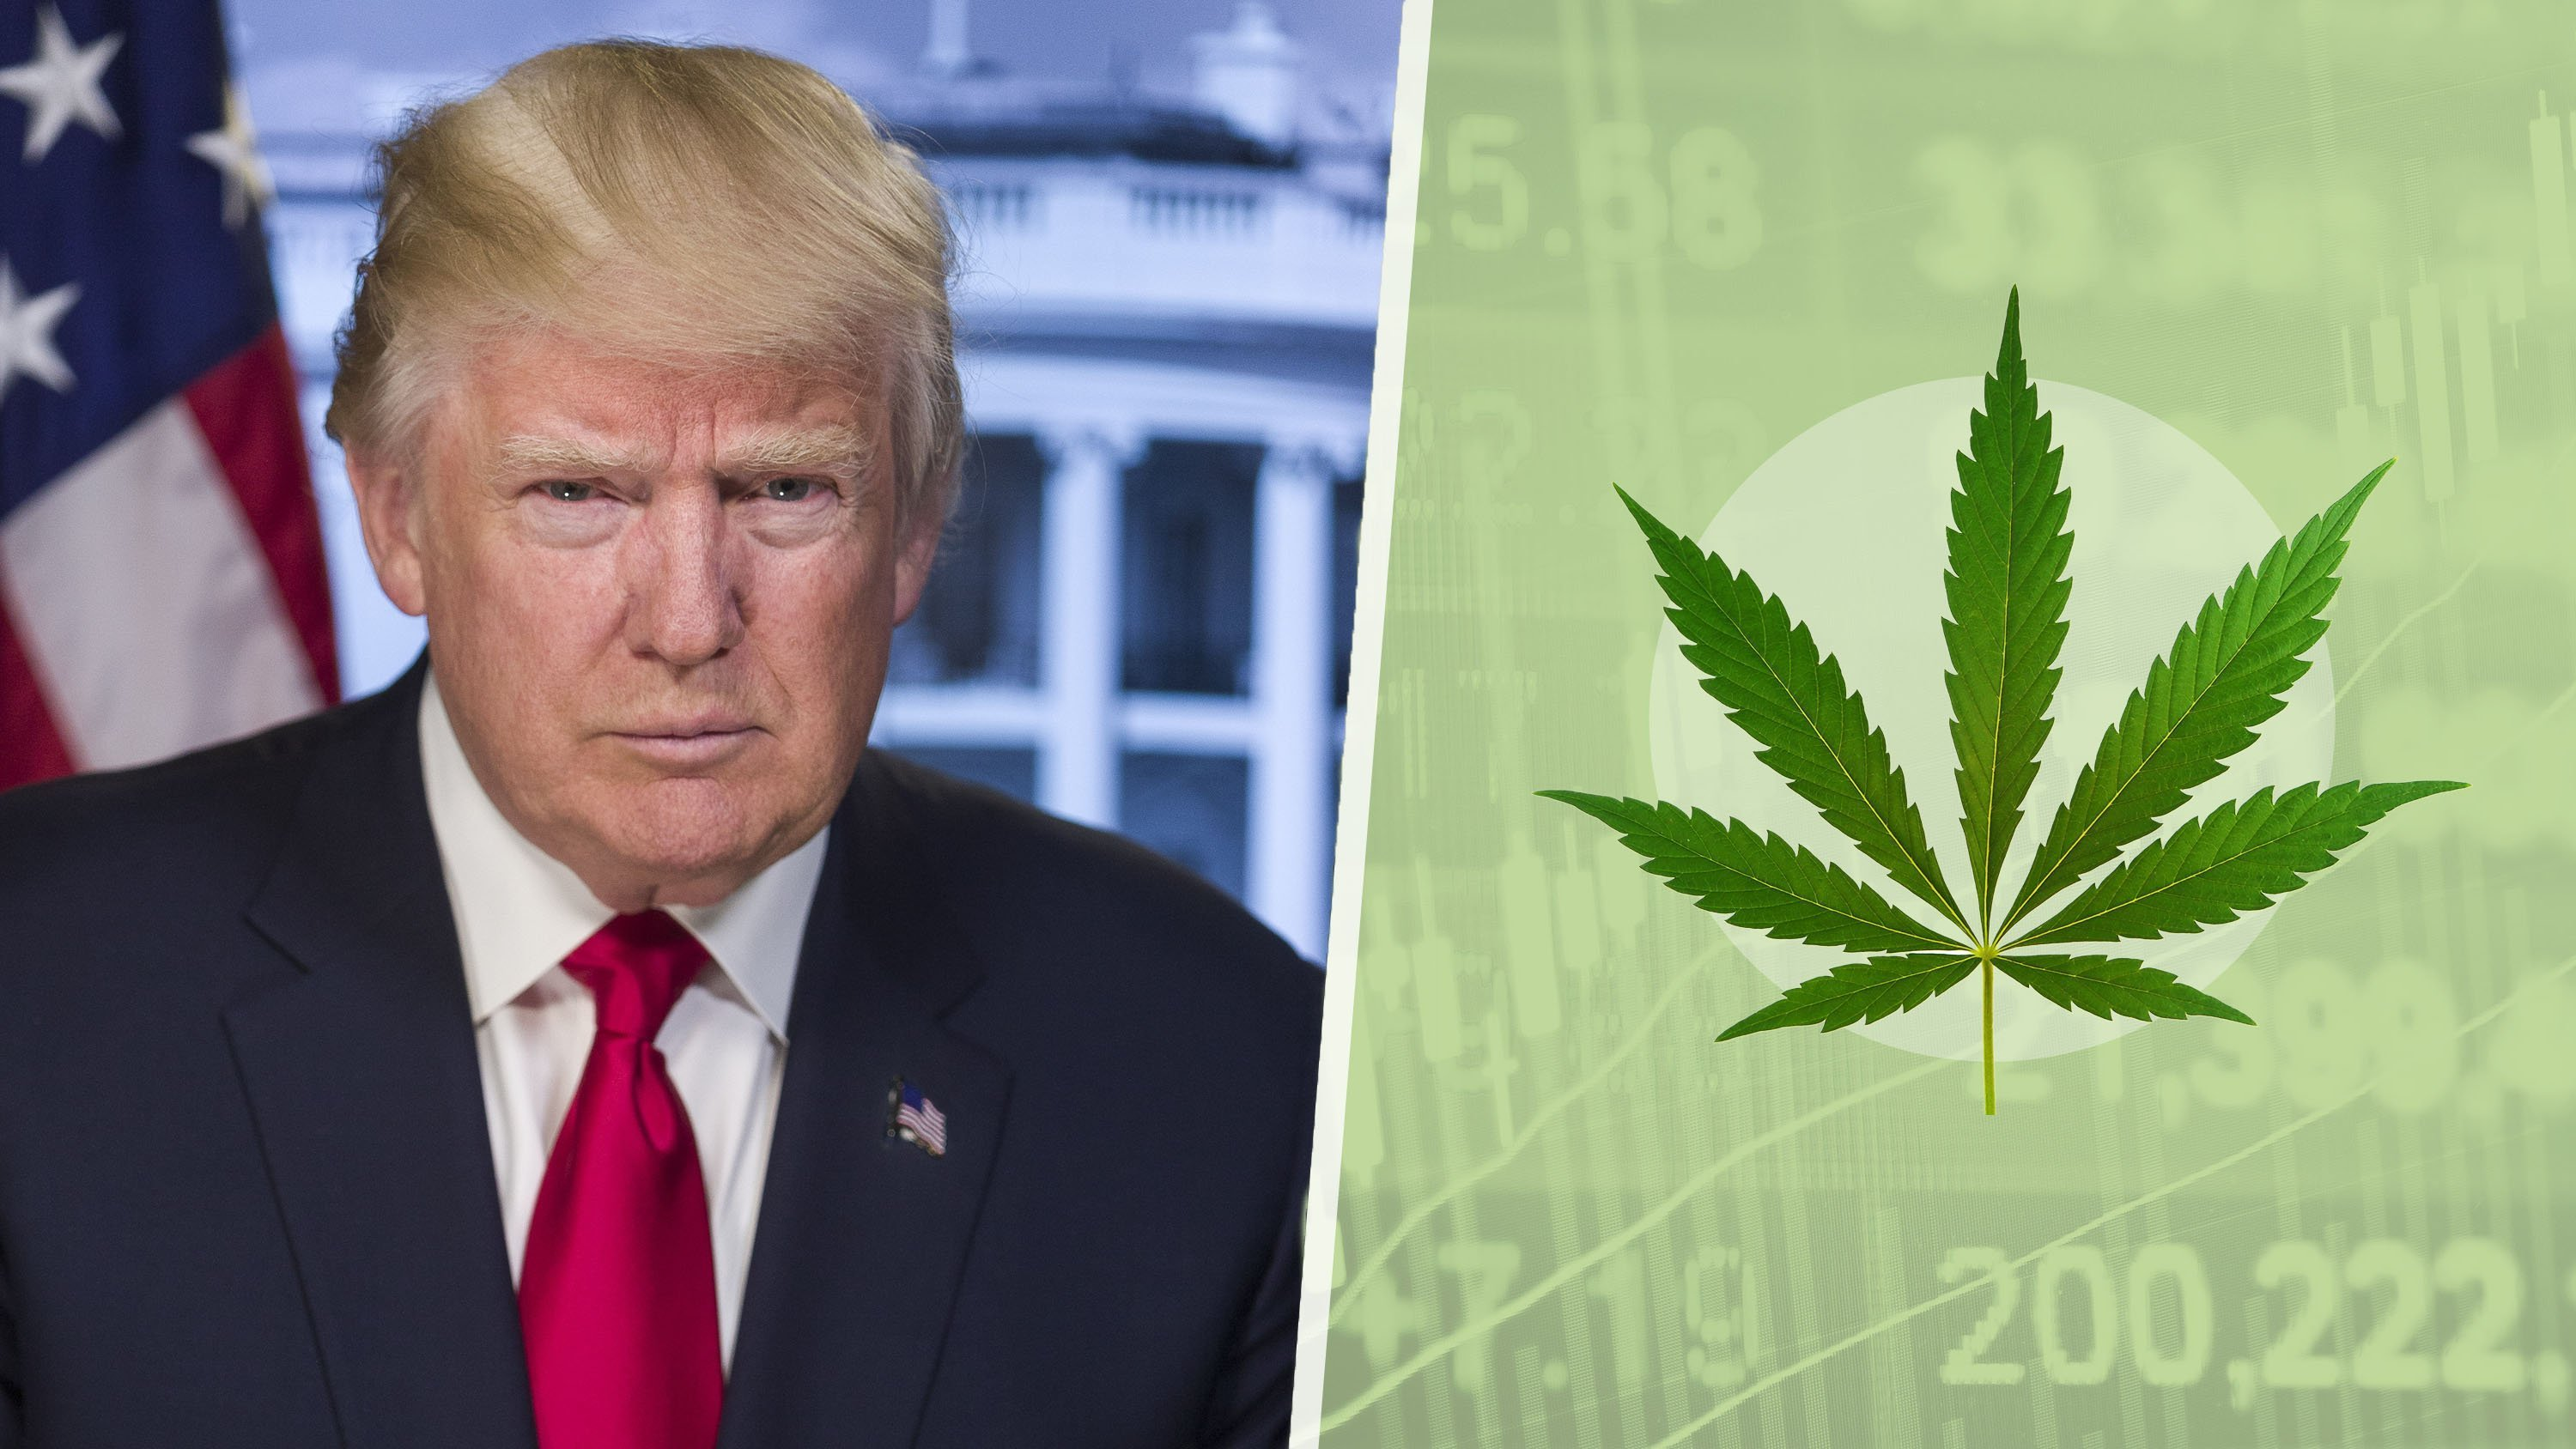 Gov. Chris Christie, head of the presidential commission on opioids, warned of the dangers of marijuana in a letter to President Donald Trump earlier this month about the panel's findings, saying the current push for marijuana legalization could...